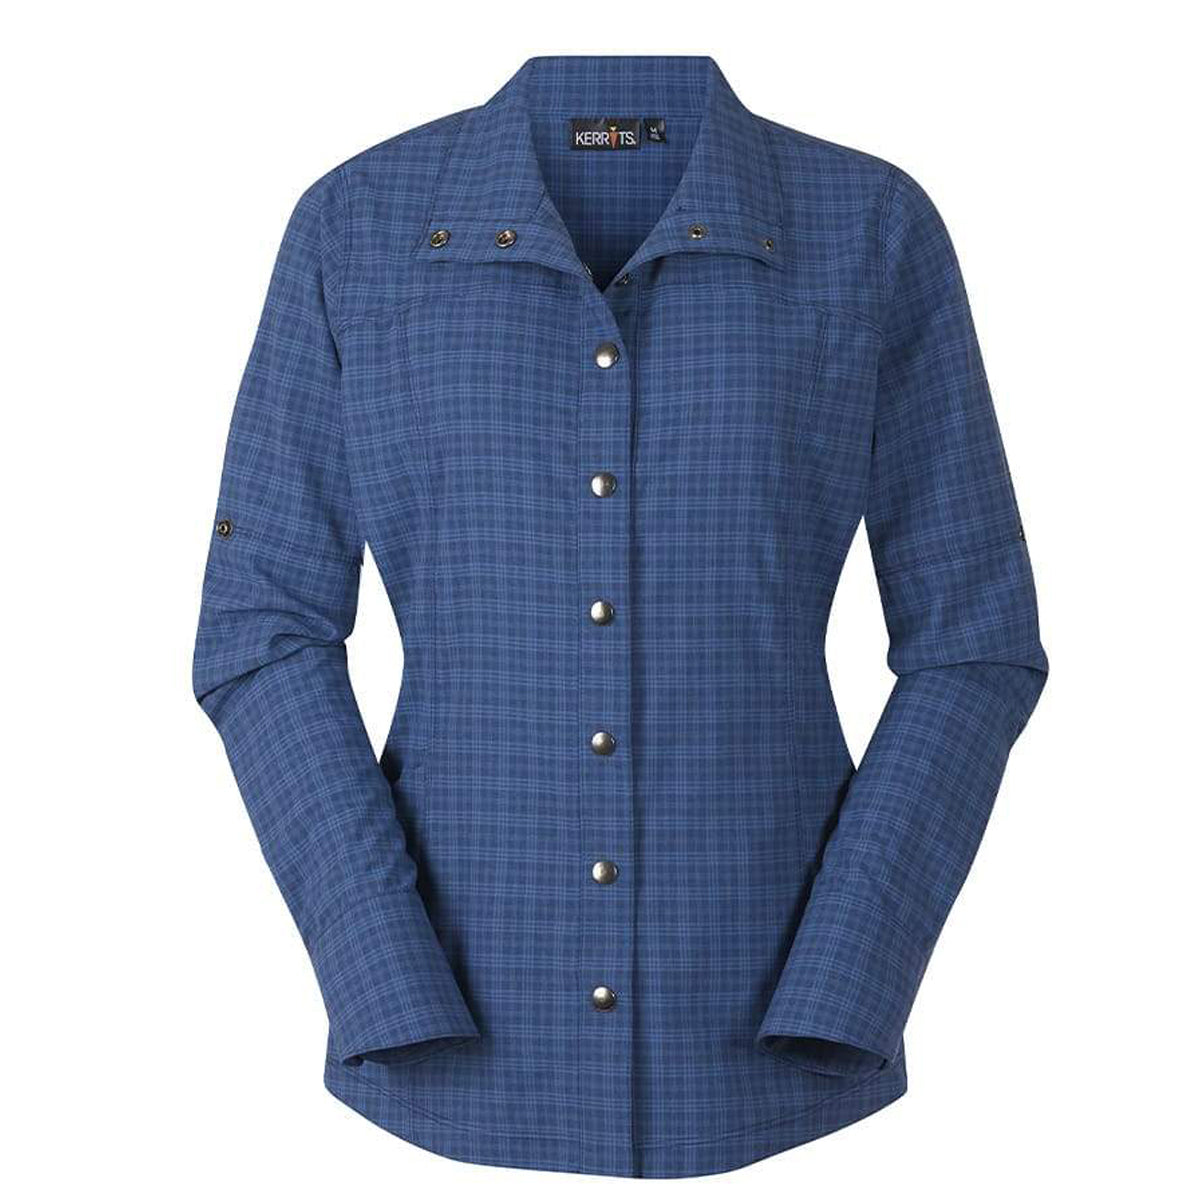 Kerrits Shady Breeze Convertible Shirt